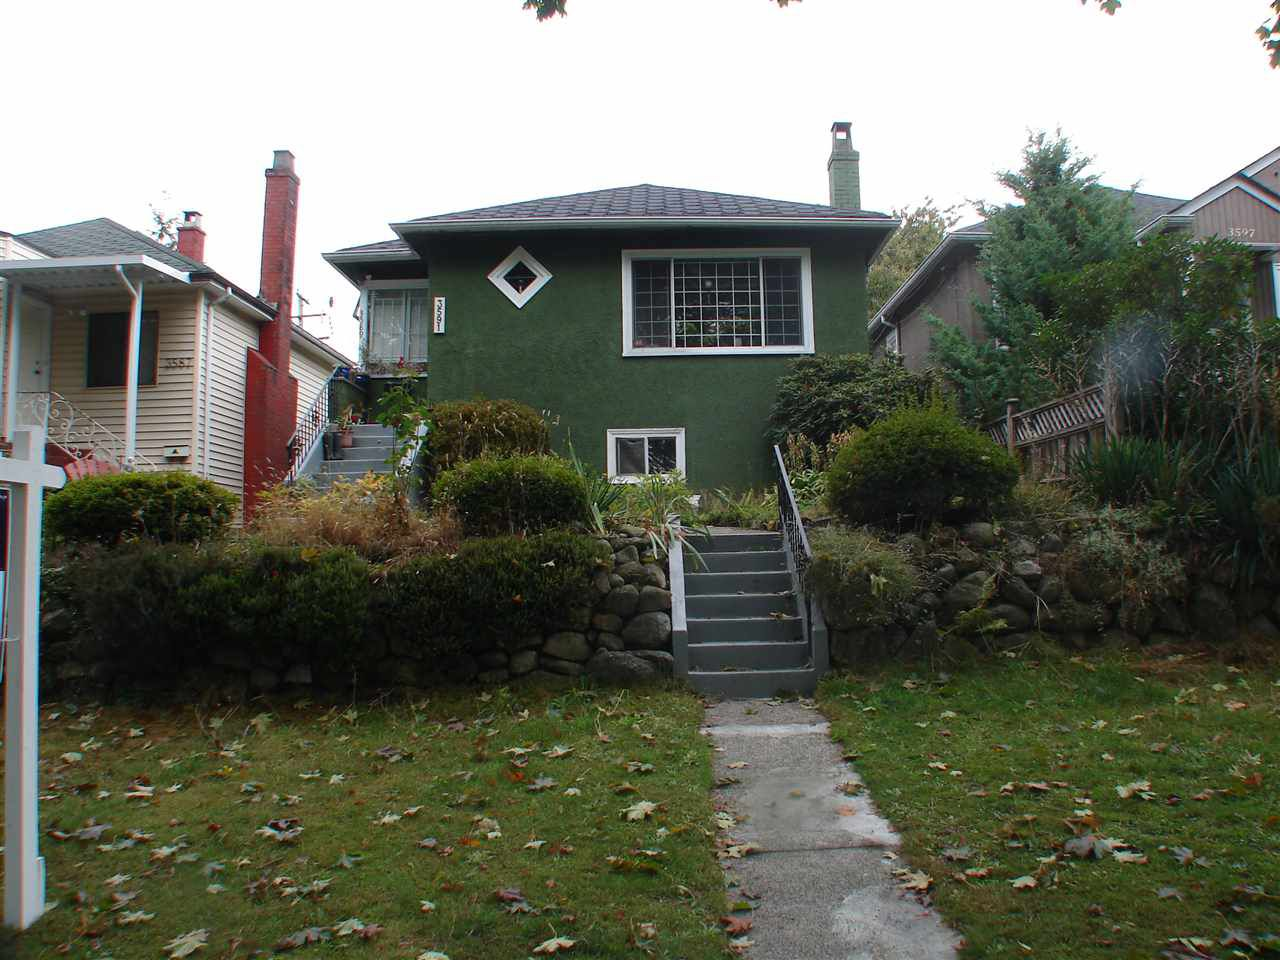 Main Photo: 3591 E PENDER Street in Vancouver: Renfrew VE House for sale (Vancouver East)  : MLS®# R2211535